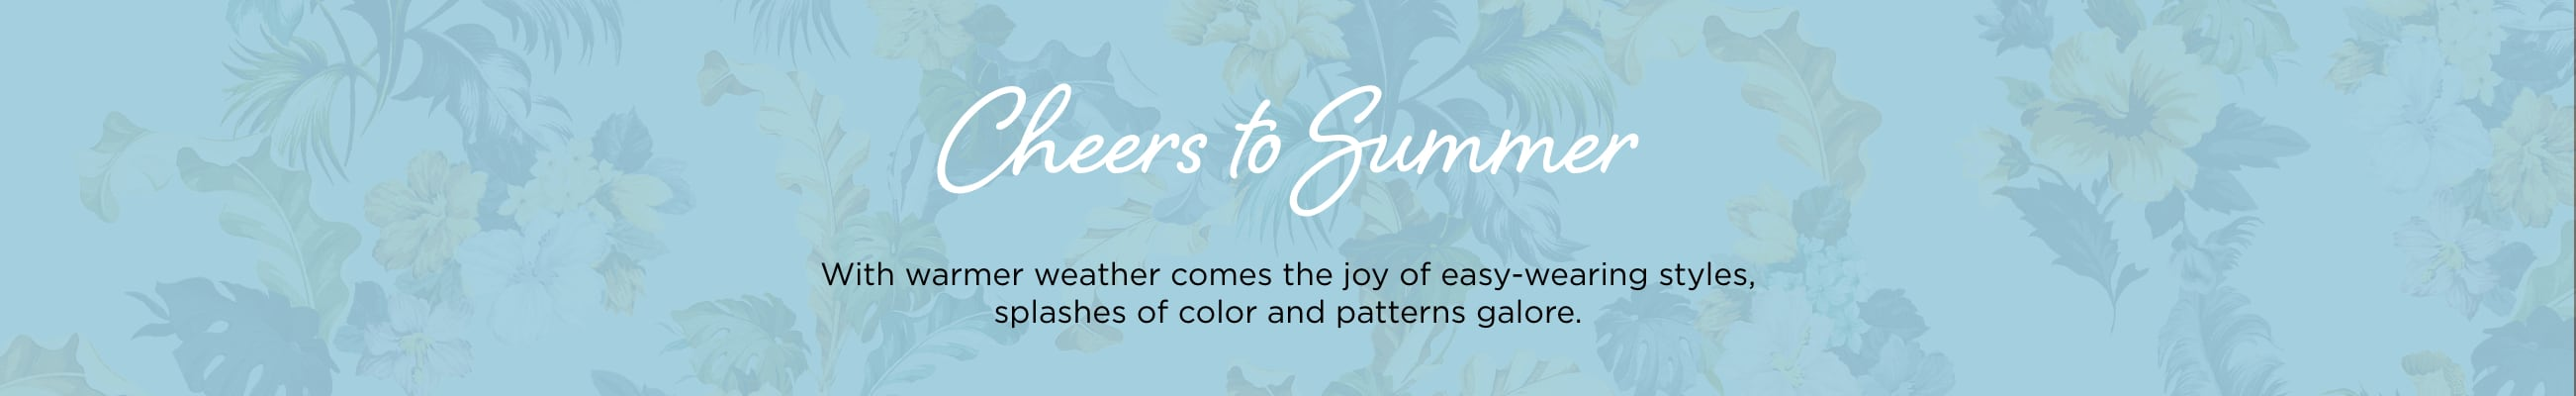 Cheers to Summer! With warmer weather comes the joy of easy-wearing styles, splashes of color, and patterns galore.